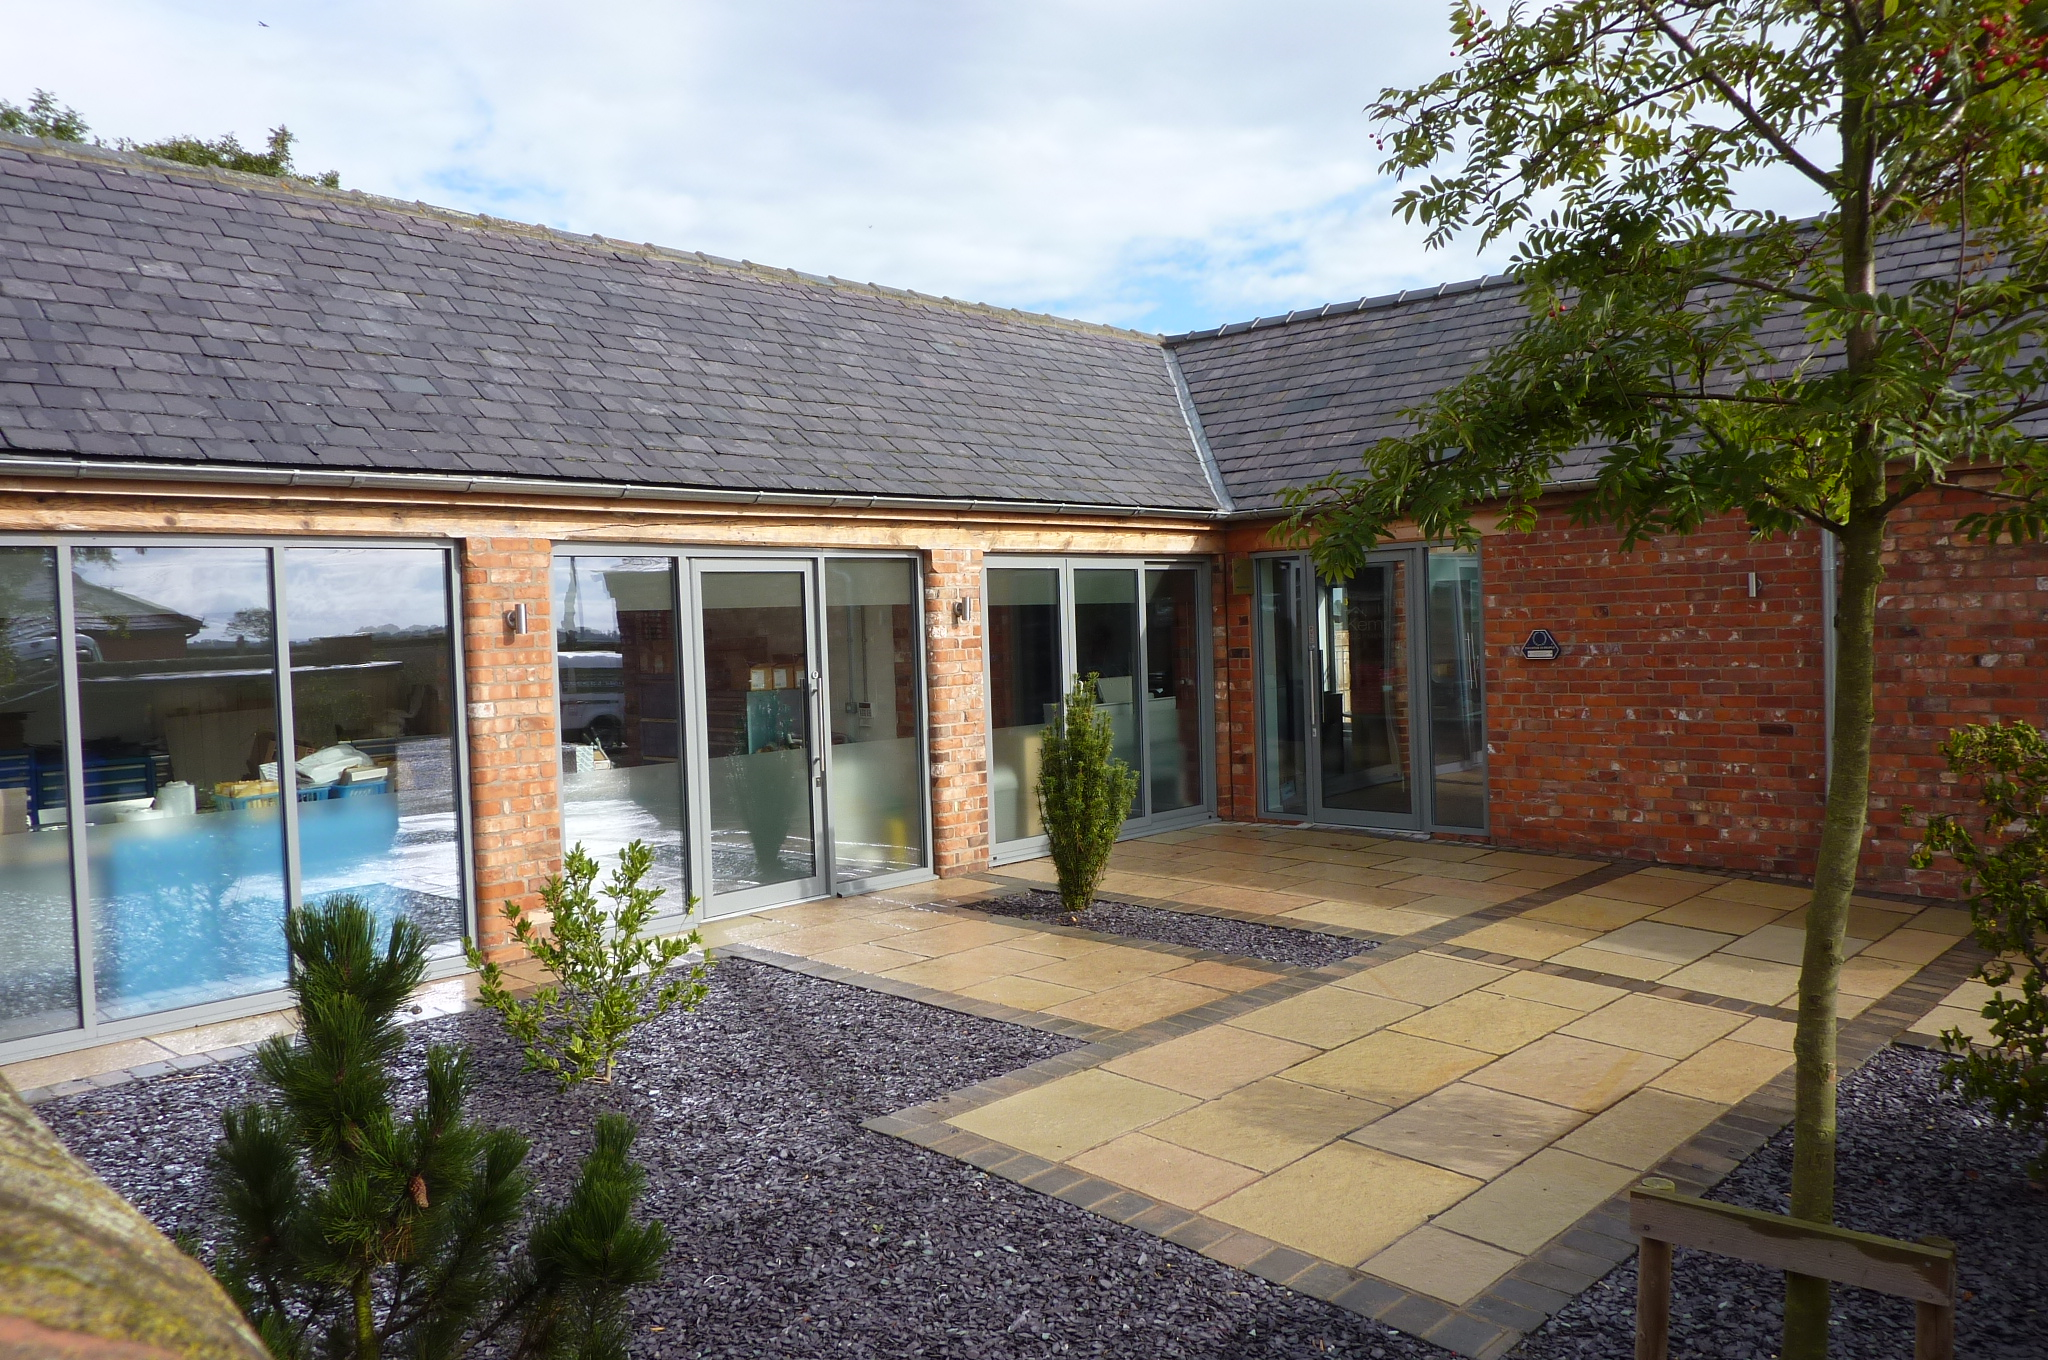 Conversion Of Disused Barn Into Offices Sigglesthorne